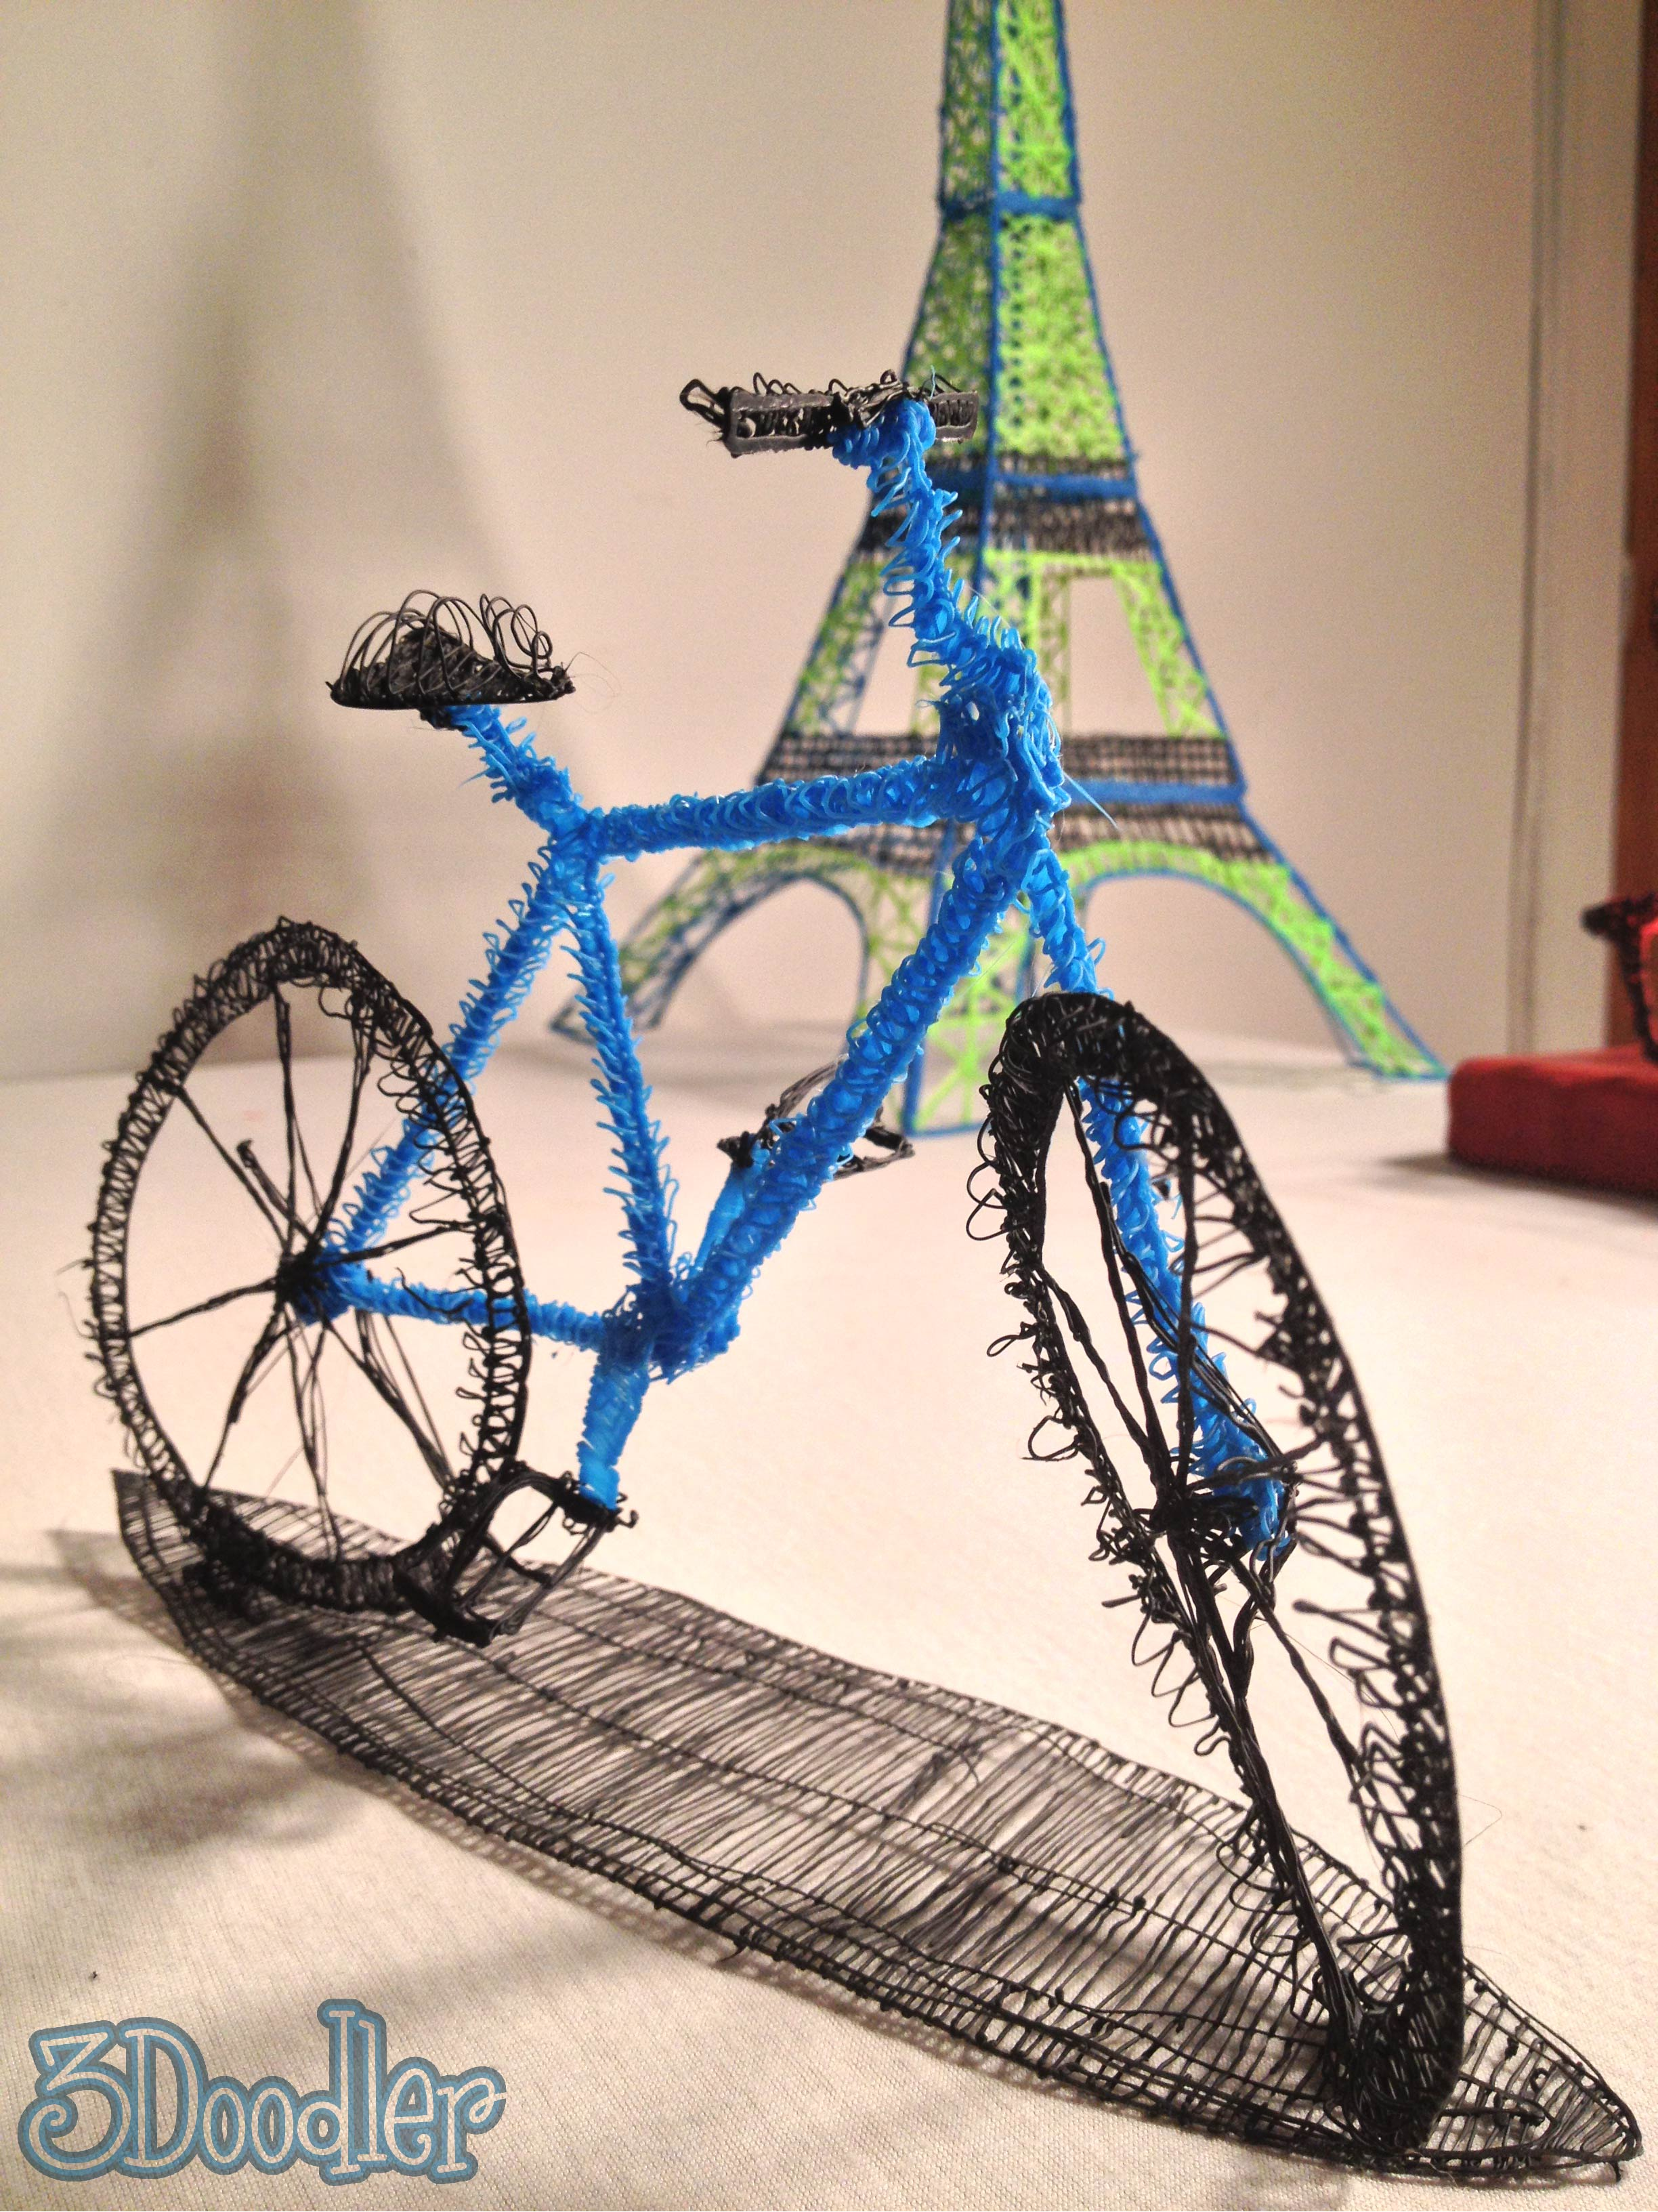 3doodler-big-bike